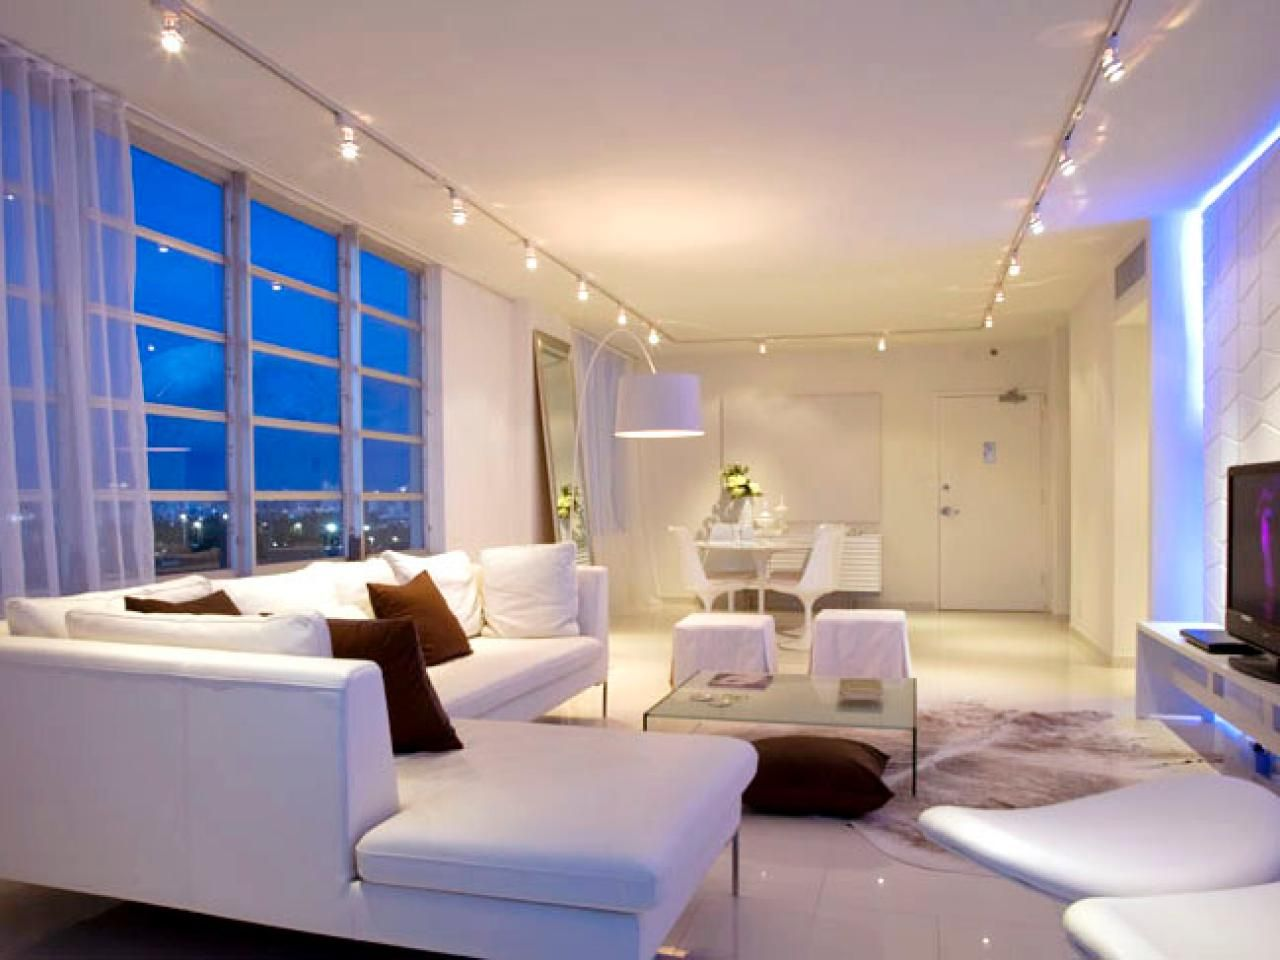 Living Room Lighting Tips | Hgtv, Living rooms and Room